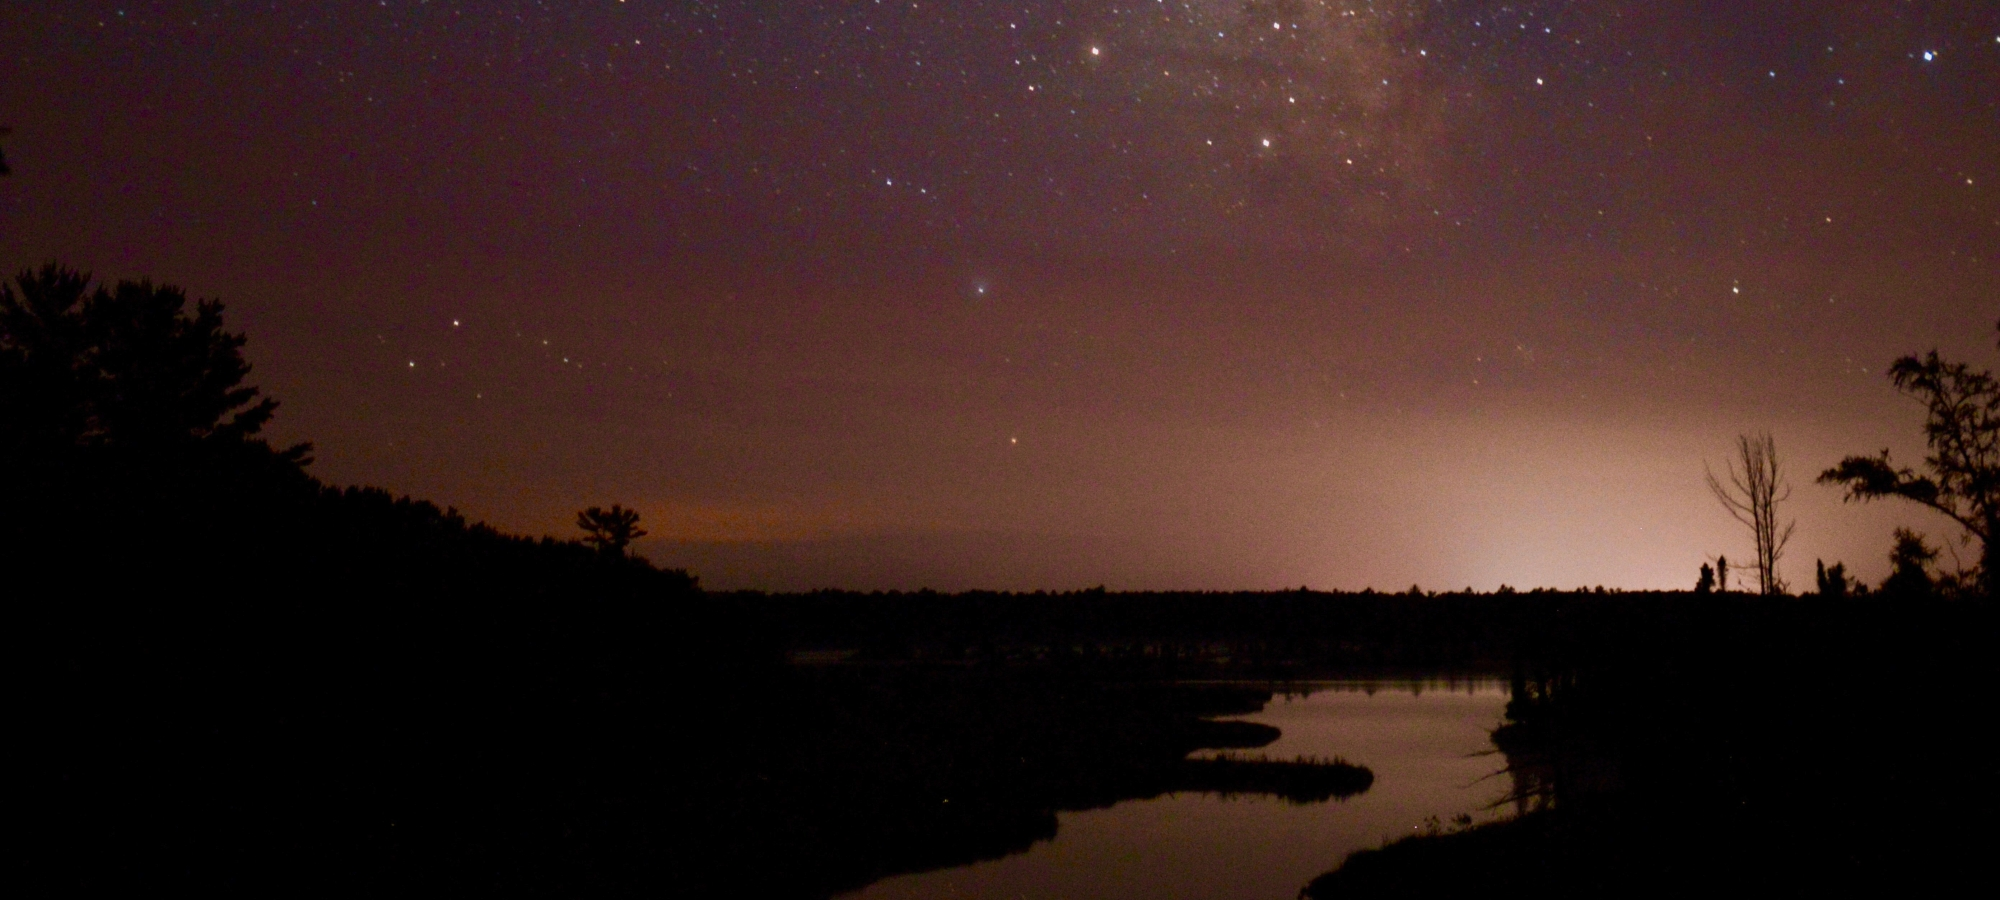 The Milky Way over the Big Bay Lagoon